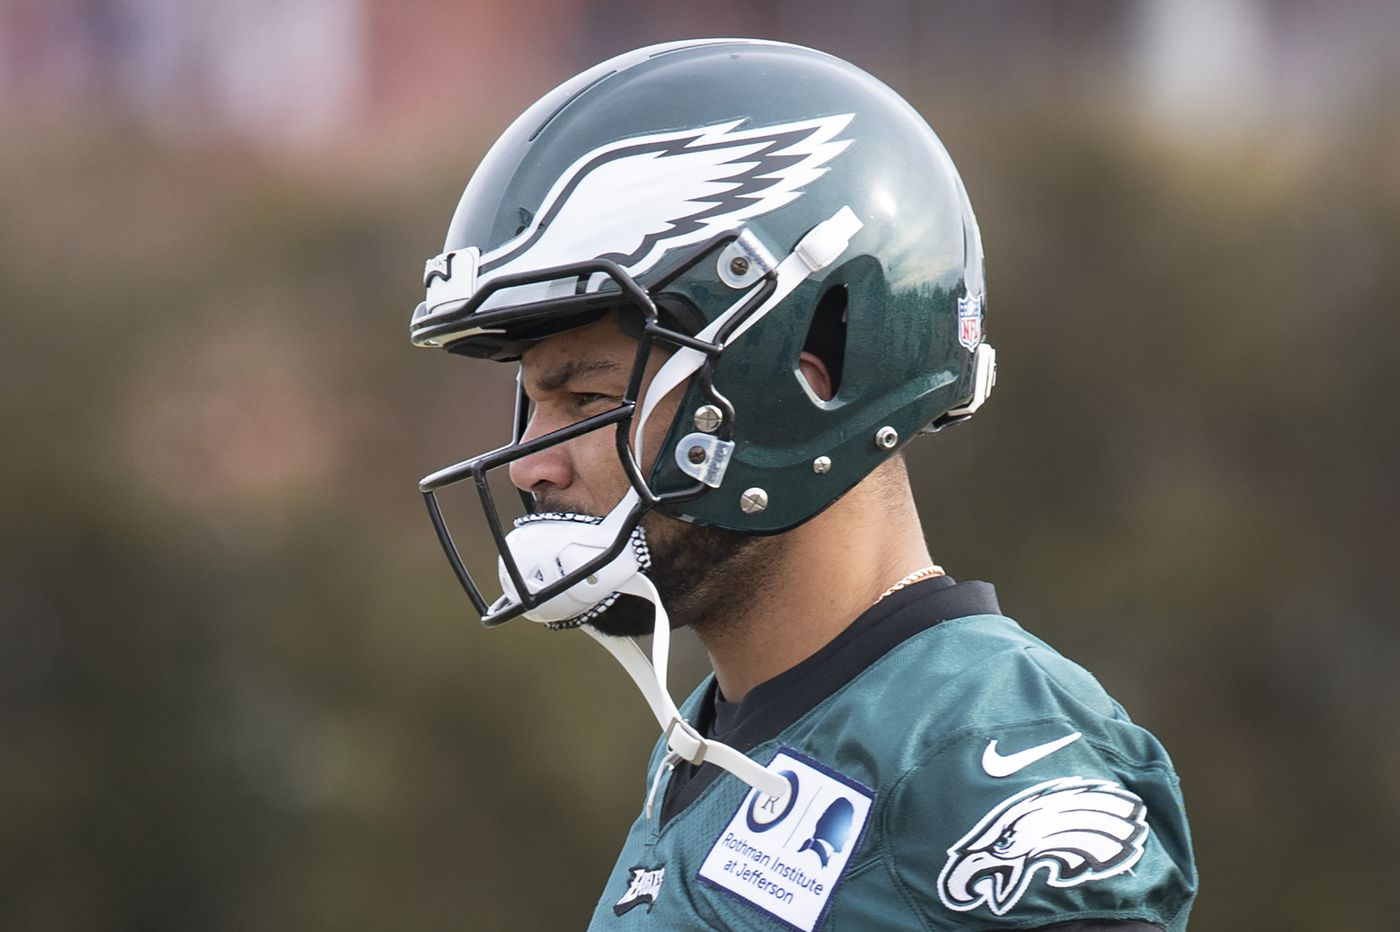 Golden Tate has been just a guy. He has one more chance to show why the Eagles traded for him.   Mike Sielski